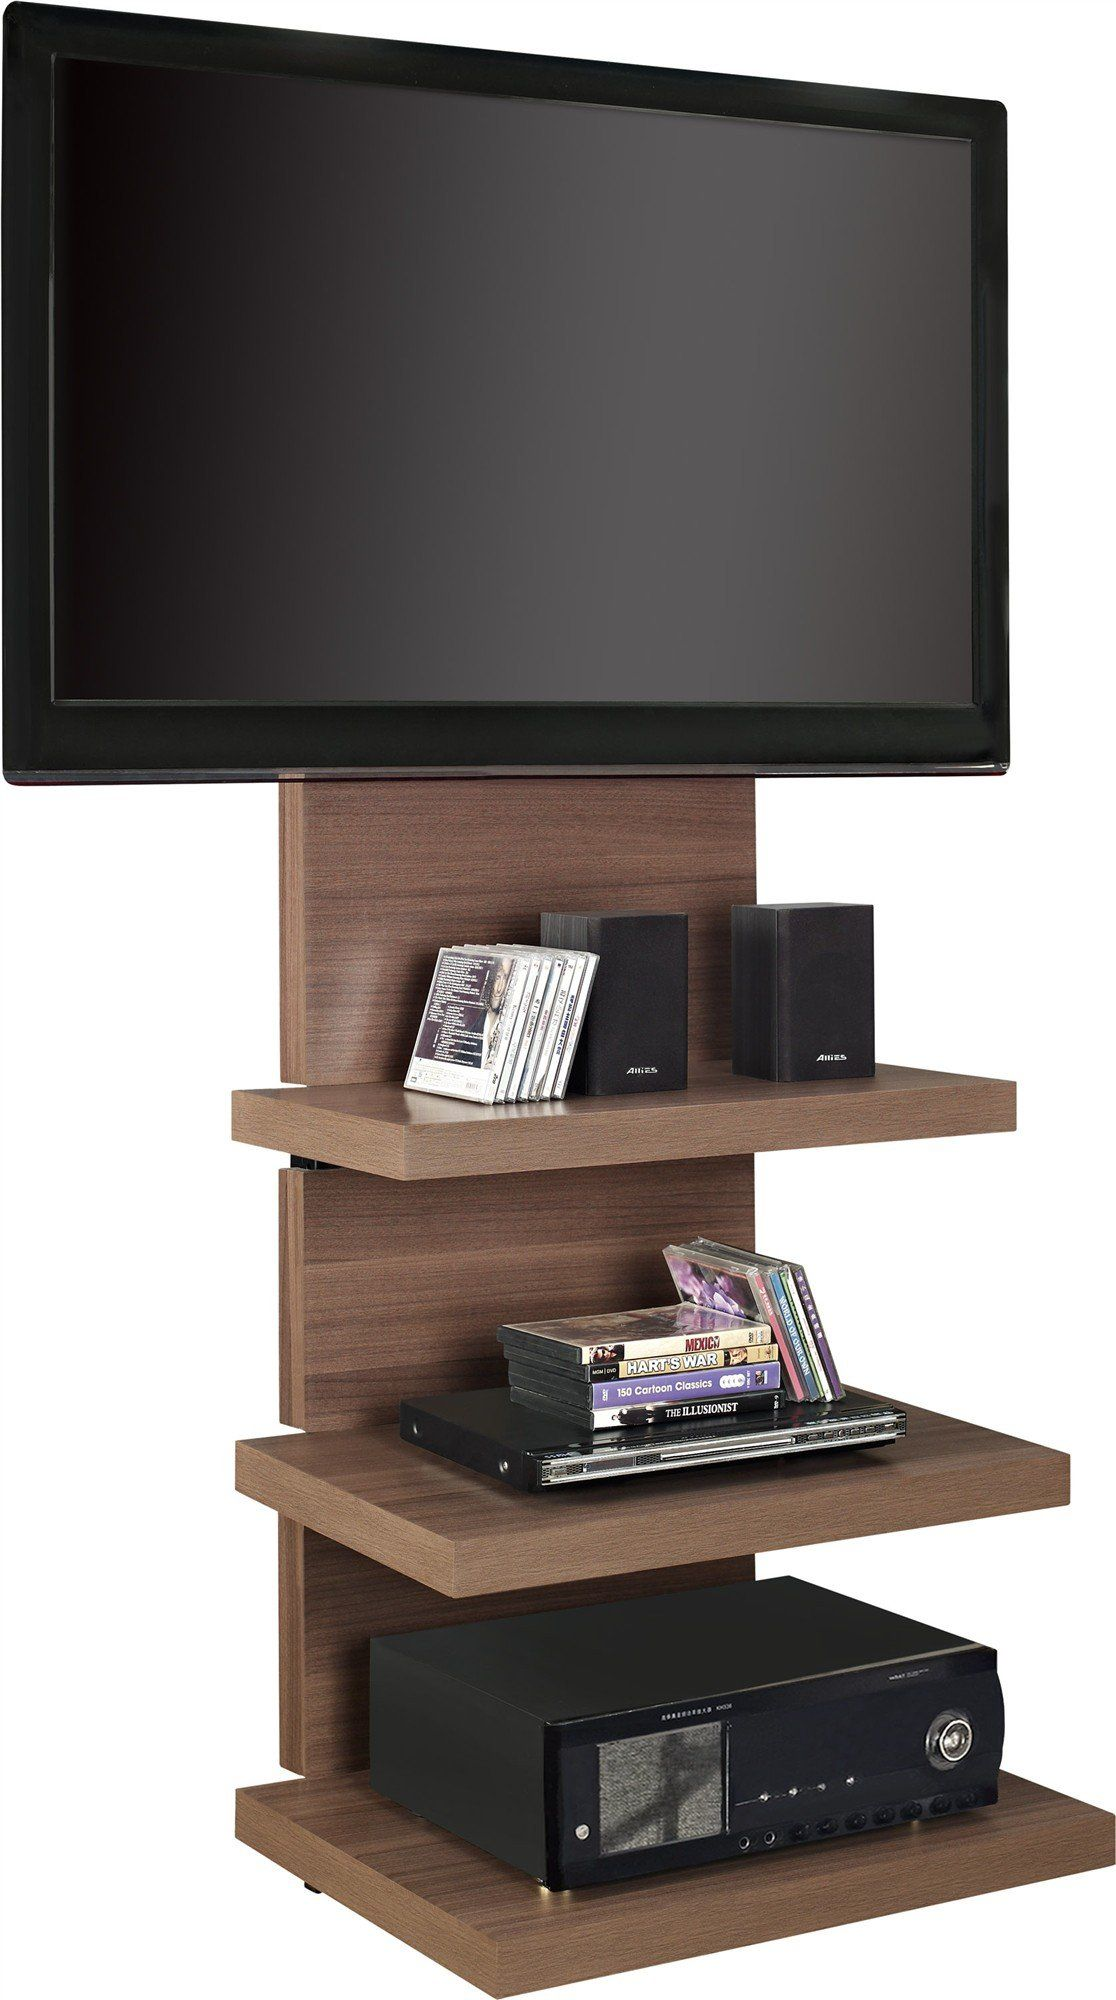 Altra furniture hollow core altramount tv stand with mount for tvs